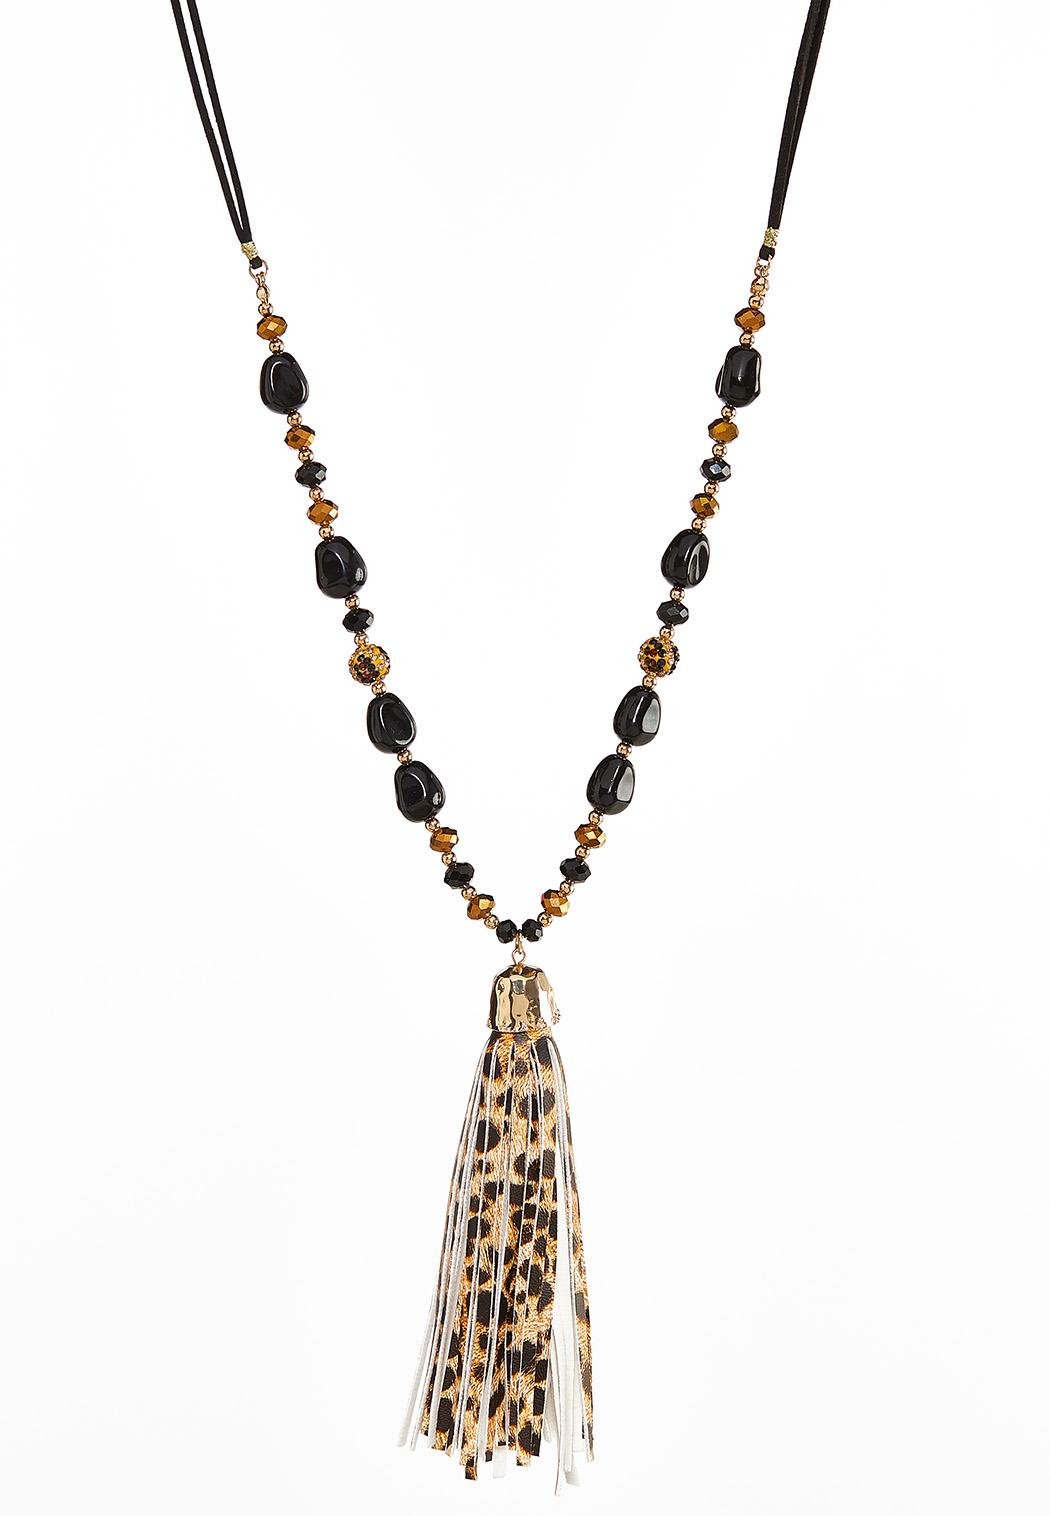 Beaded Leopard Tassel Necklace Throughout Most Up To Date Beaded Chain Necklaces (View 16 of 25)